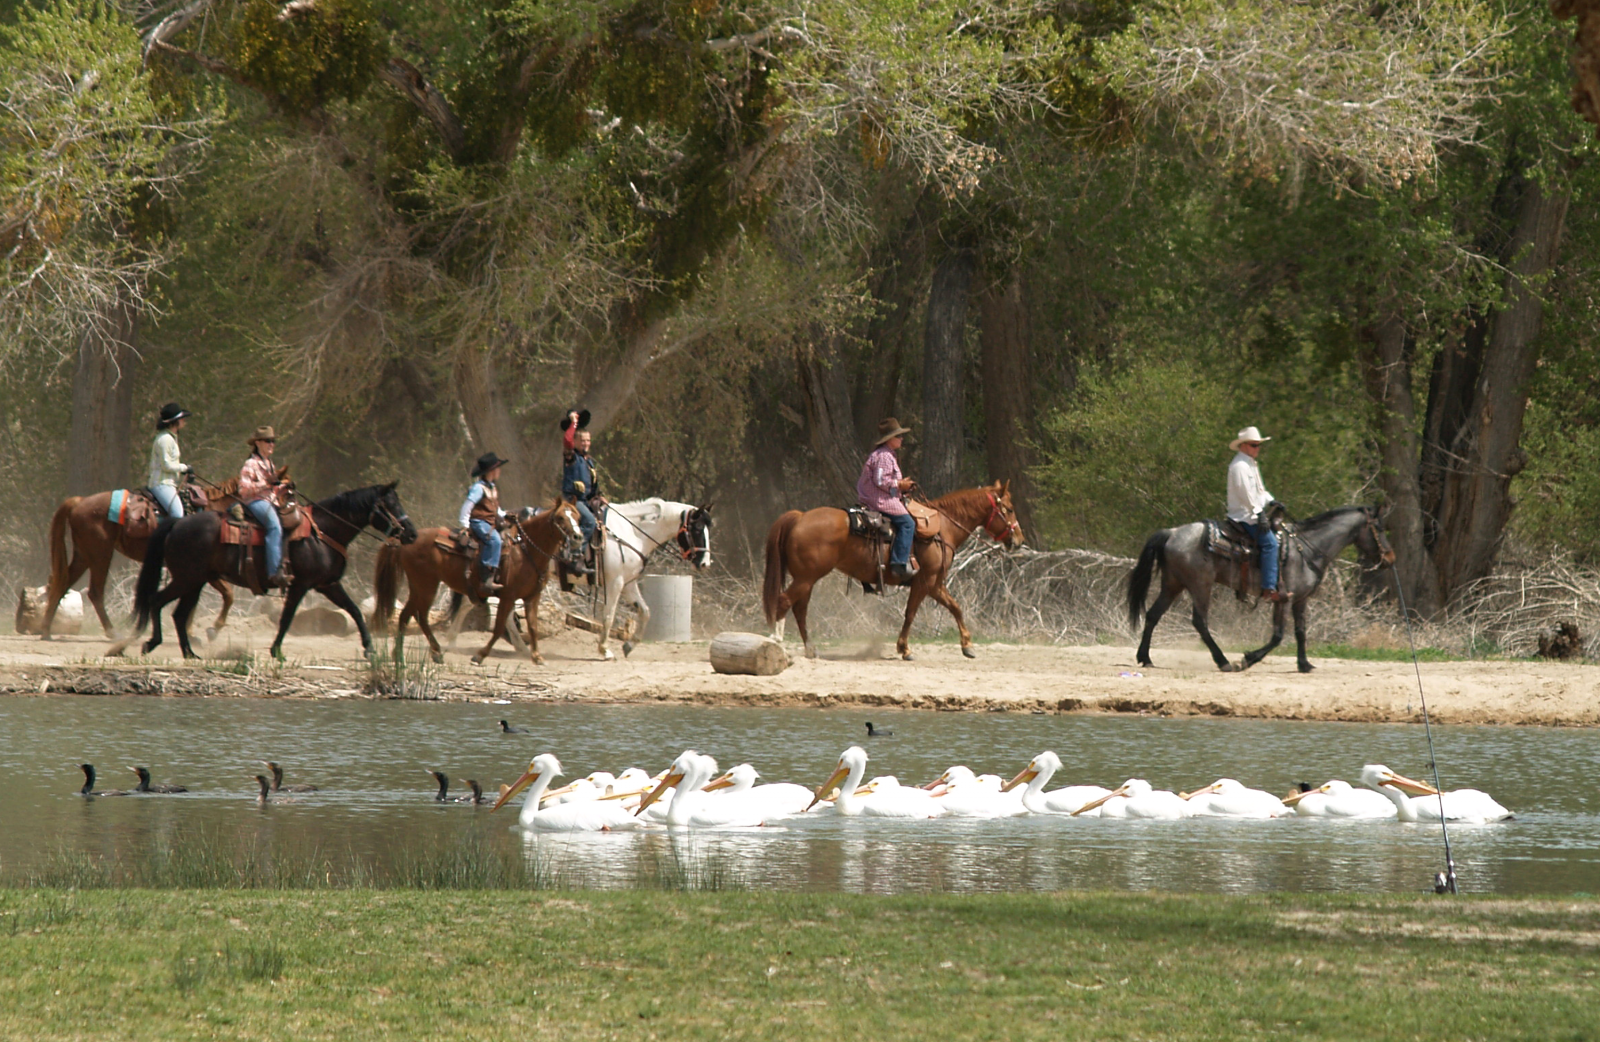 Riders are seen on horseback along the lake with ducks.